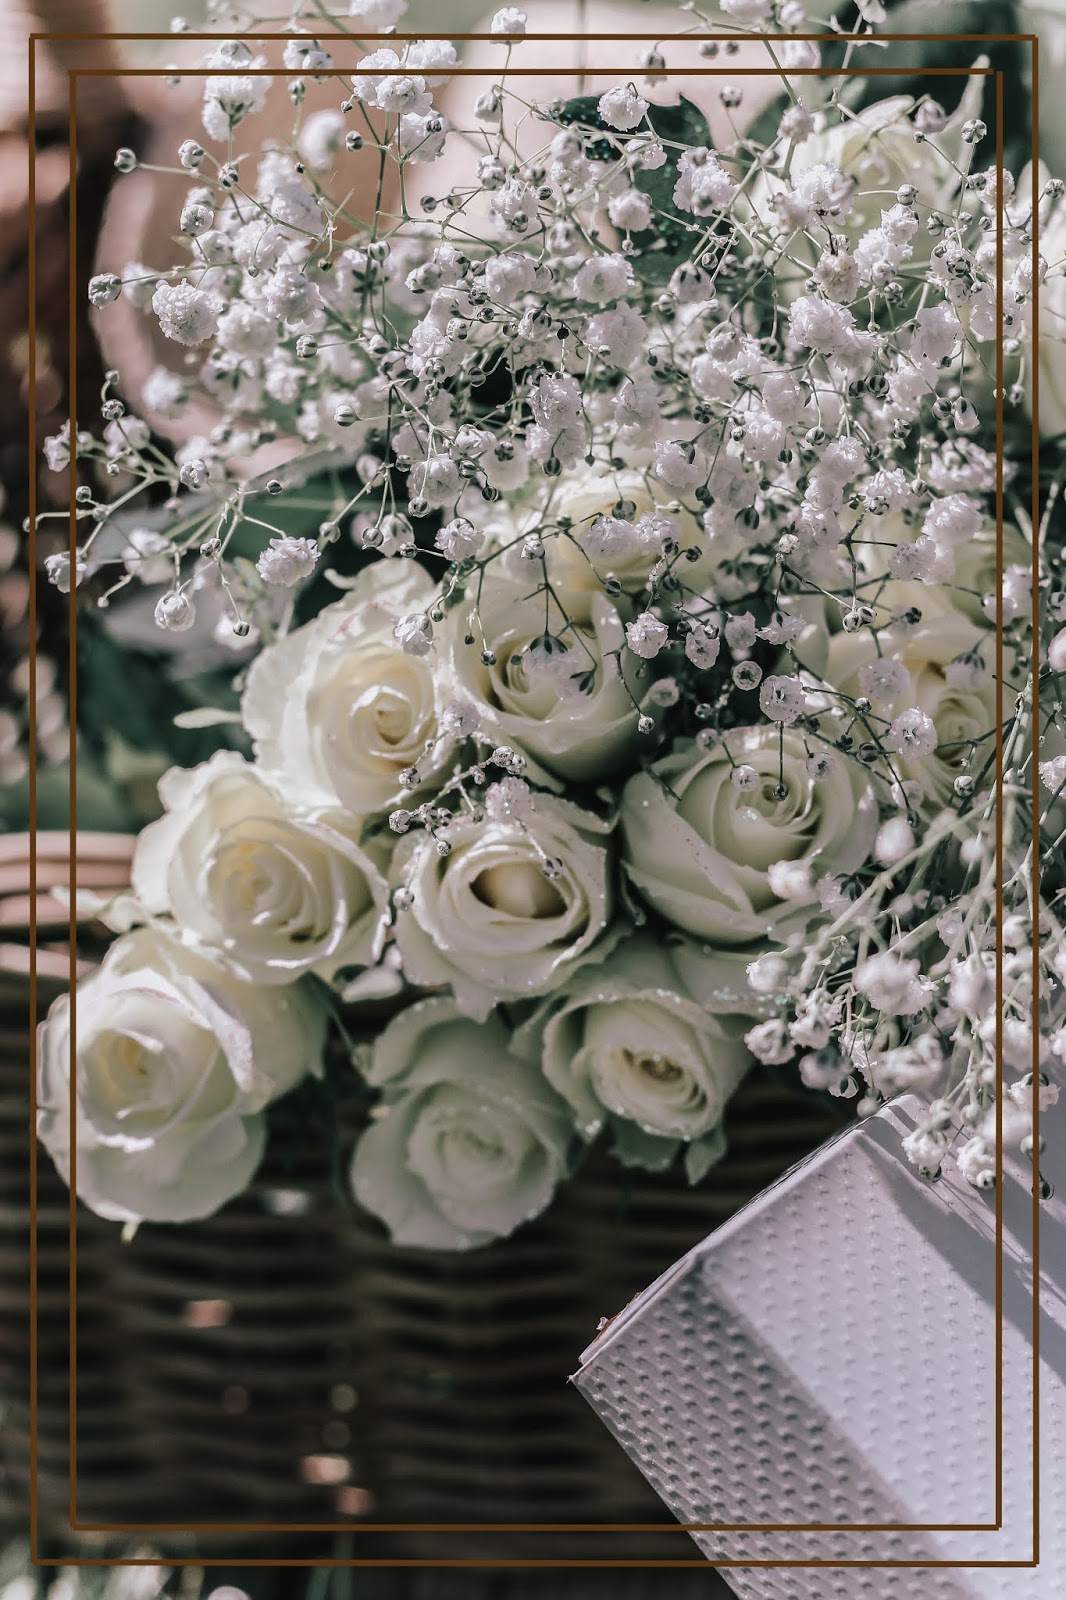 Roses and Gypsophila covered in Glitter